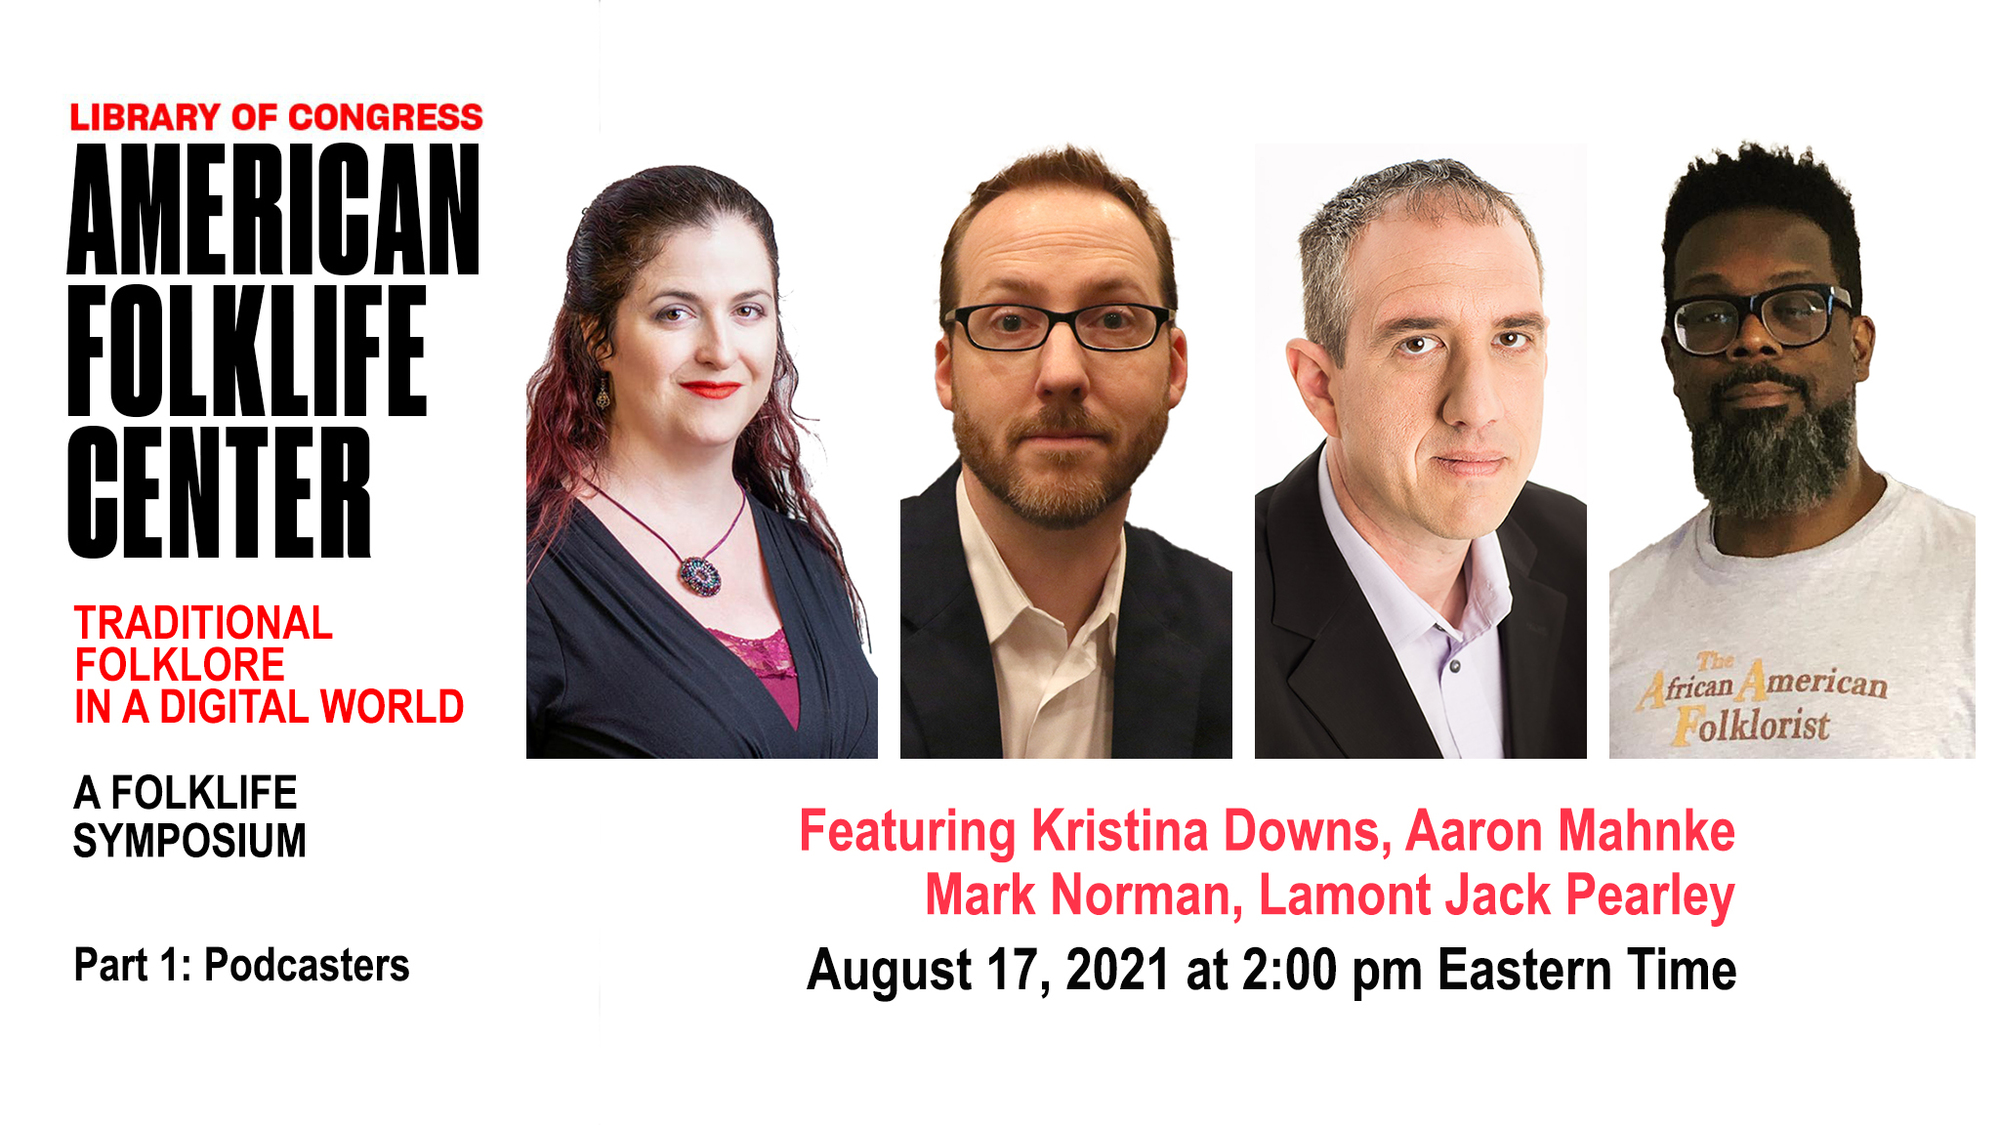 Podcasters: Kristina Downs, Aaron Mahnke, Mark Norman, Lamont Jack Pearley